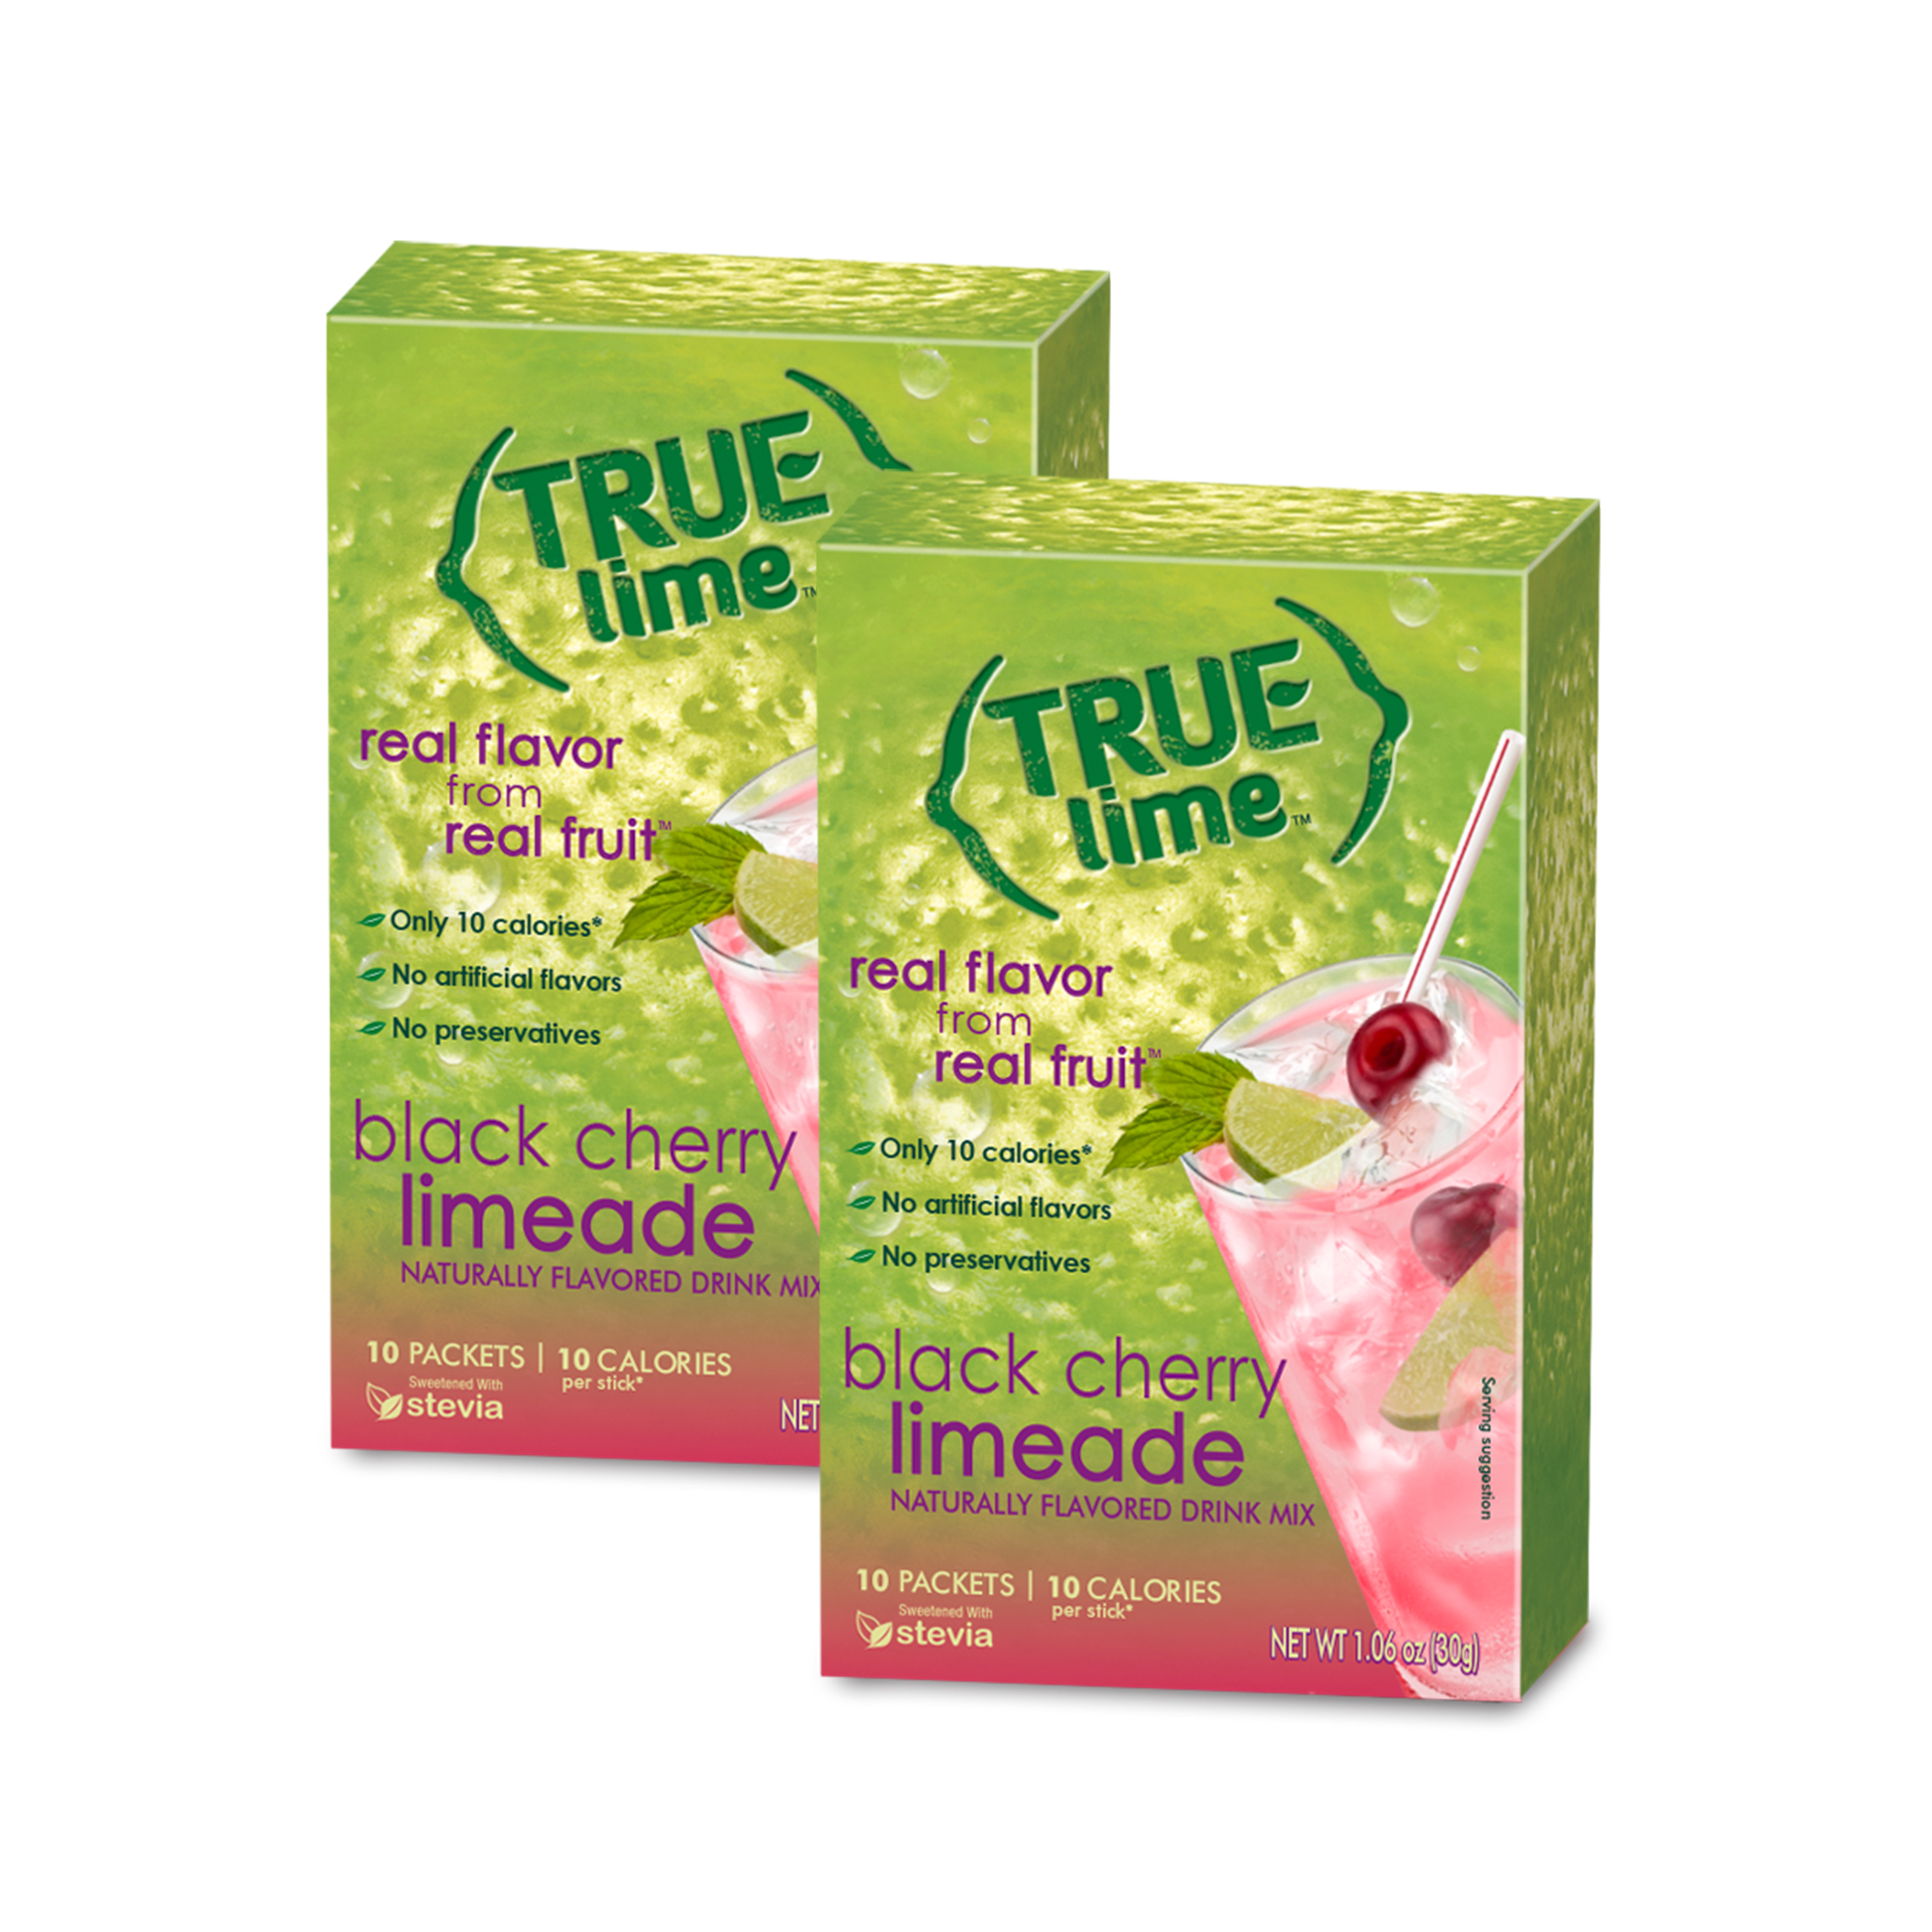 True Lemon Drink Mix, 1.06 Oz, Black Cherry Limeade, 10 Packets (Pack of 1)